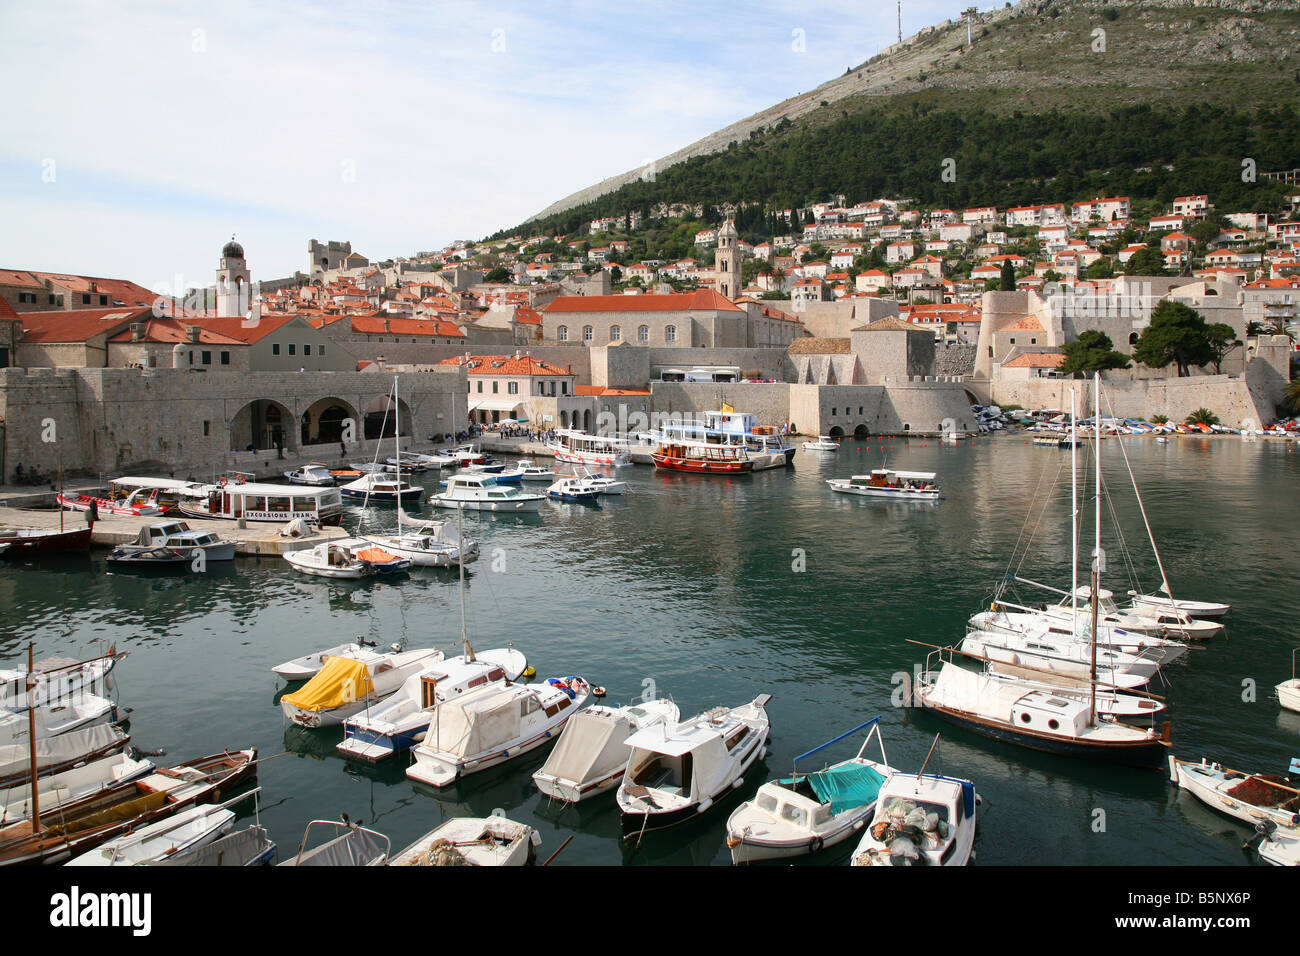 DUBROVNIC HARBOUR IN CROATIA EASTERN EUROPE Stock Photo